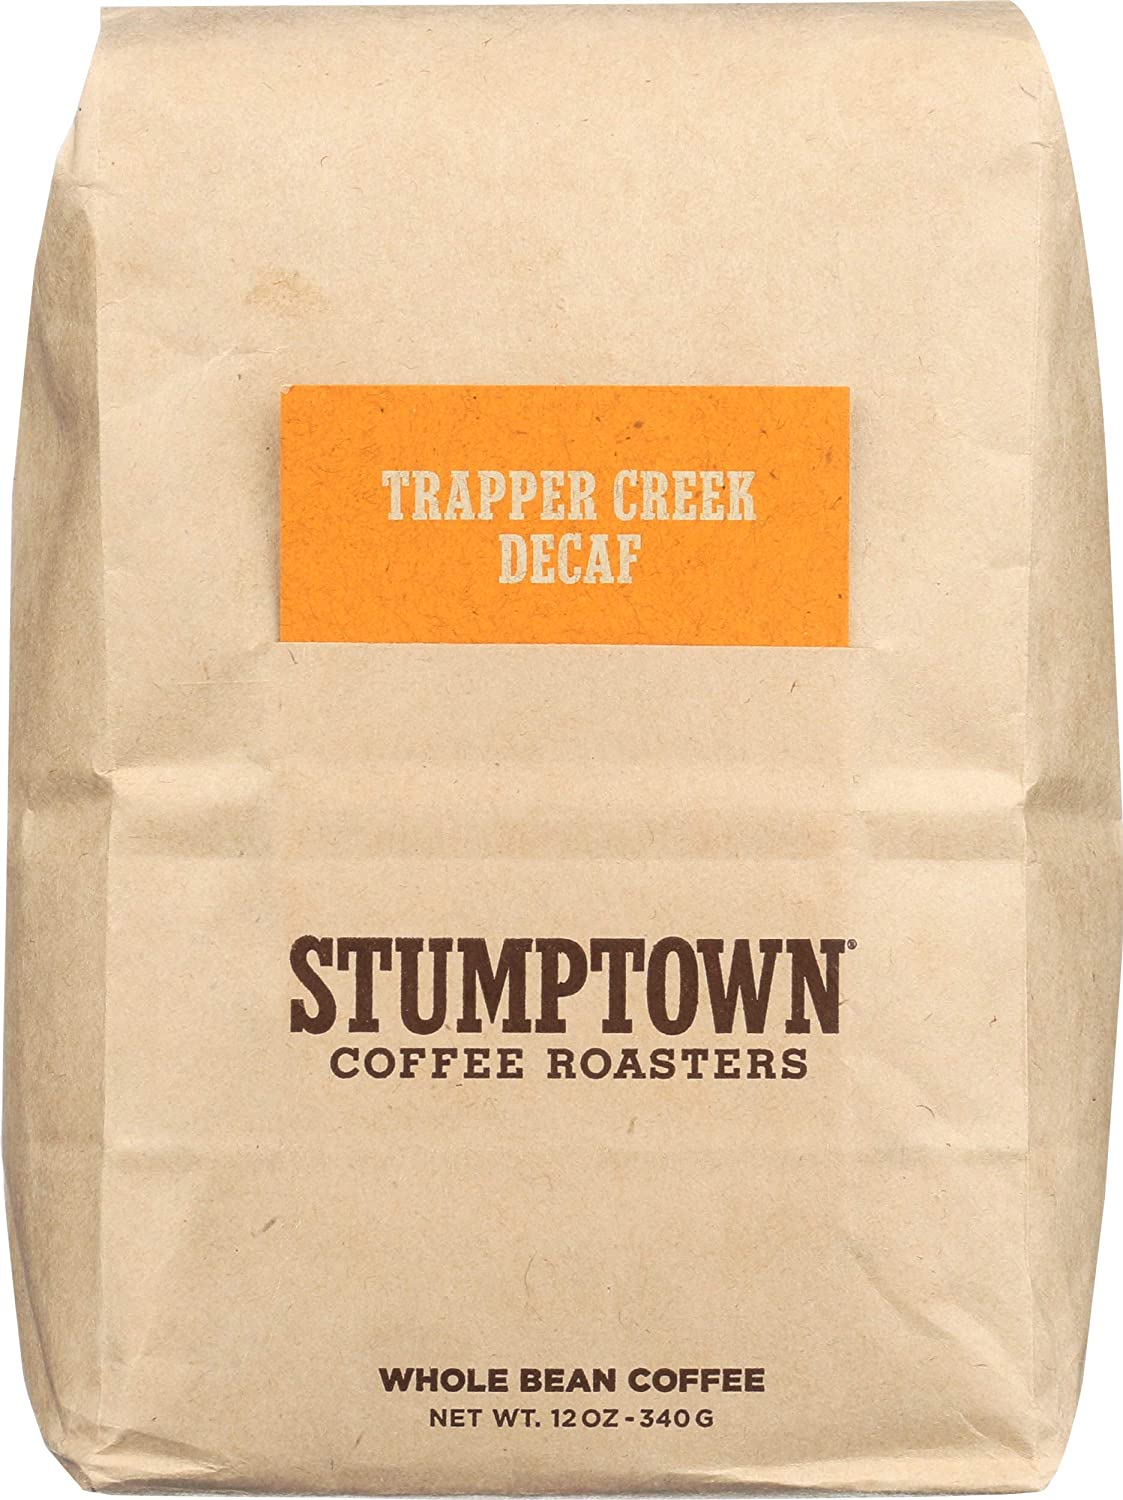 Stumptown Coffee Roasters Whole Decaf Trapper Super sale period limited Bean Mail order Creek